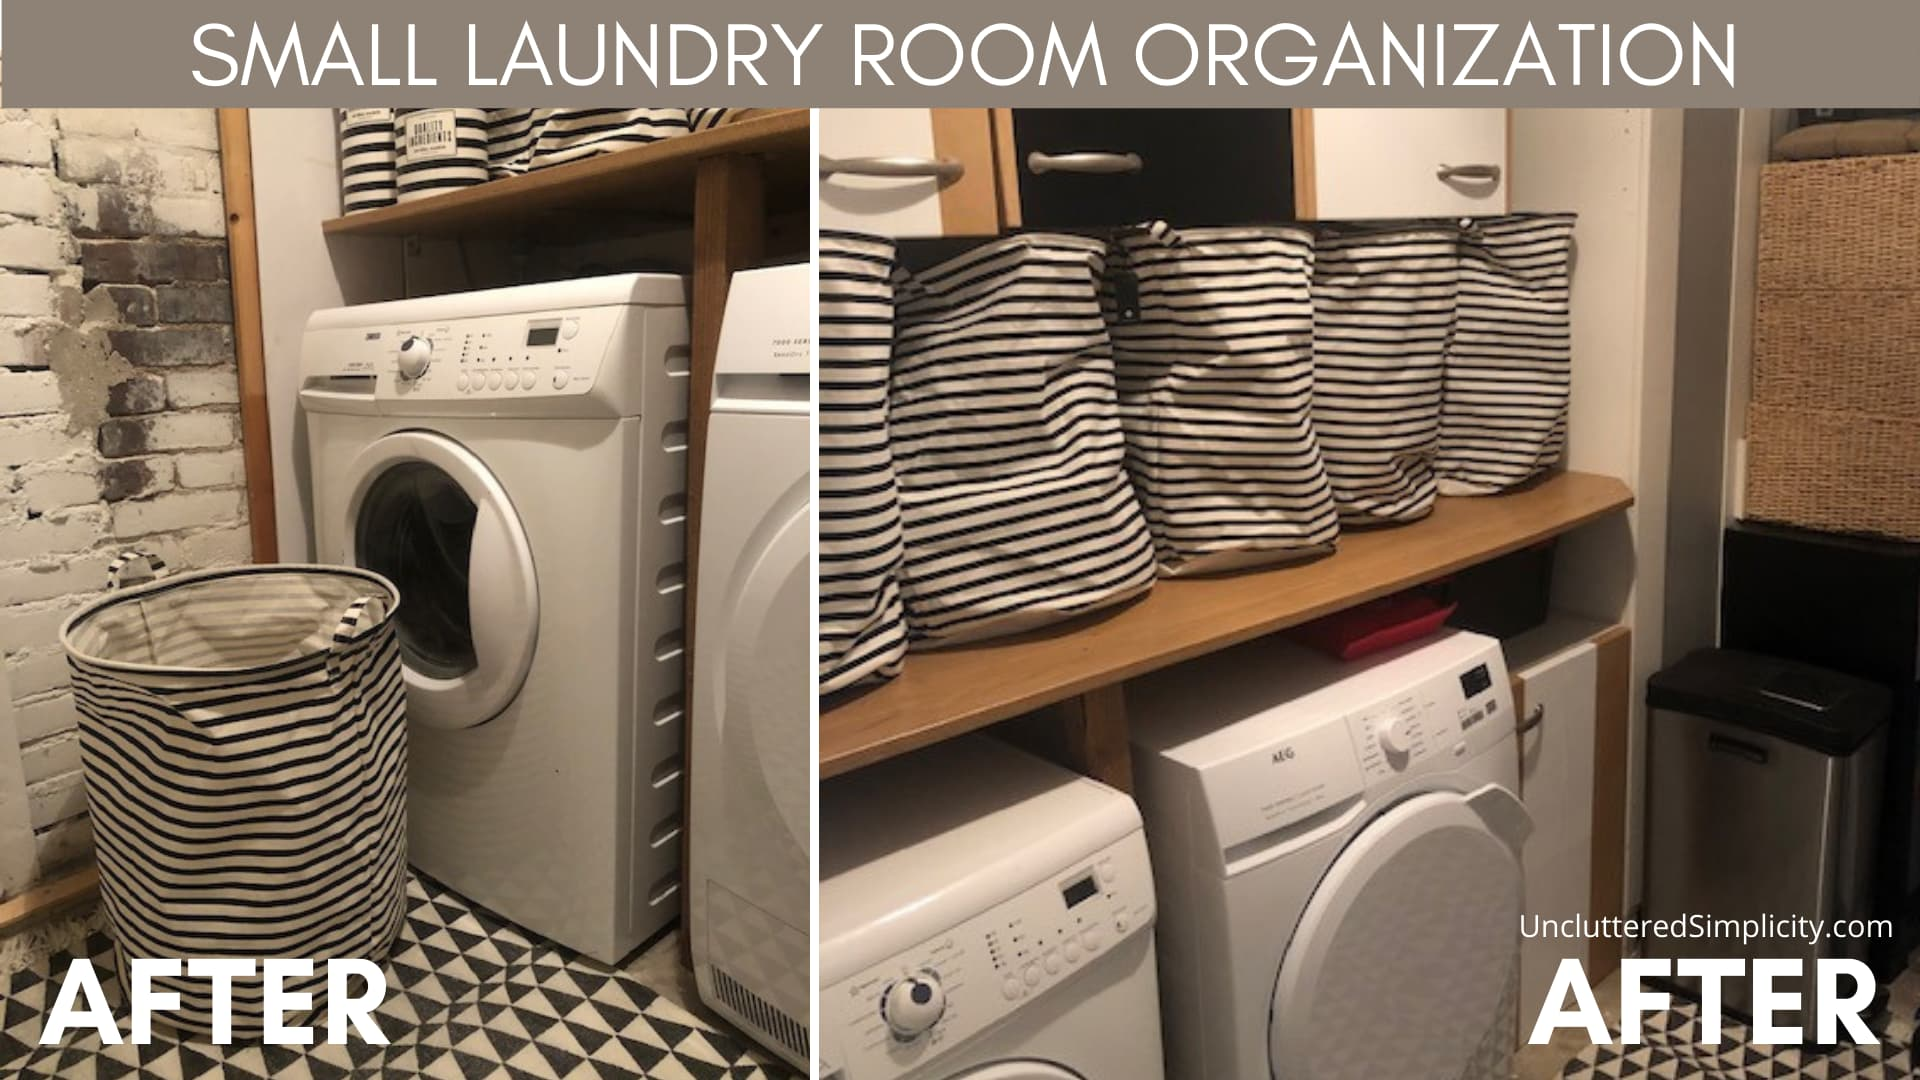 small laundry room organization ideas - after